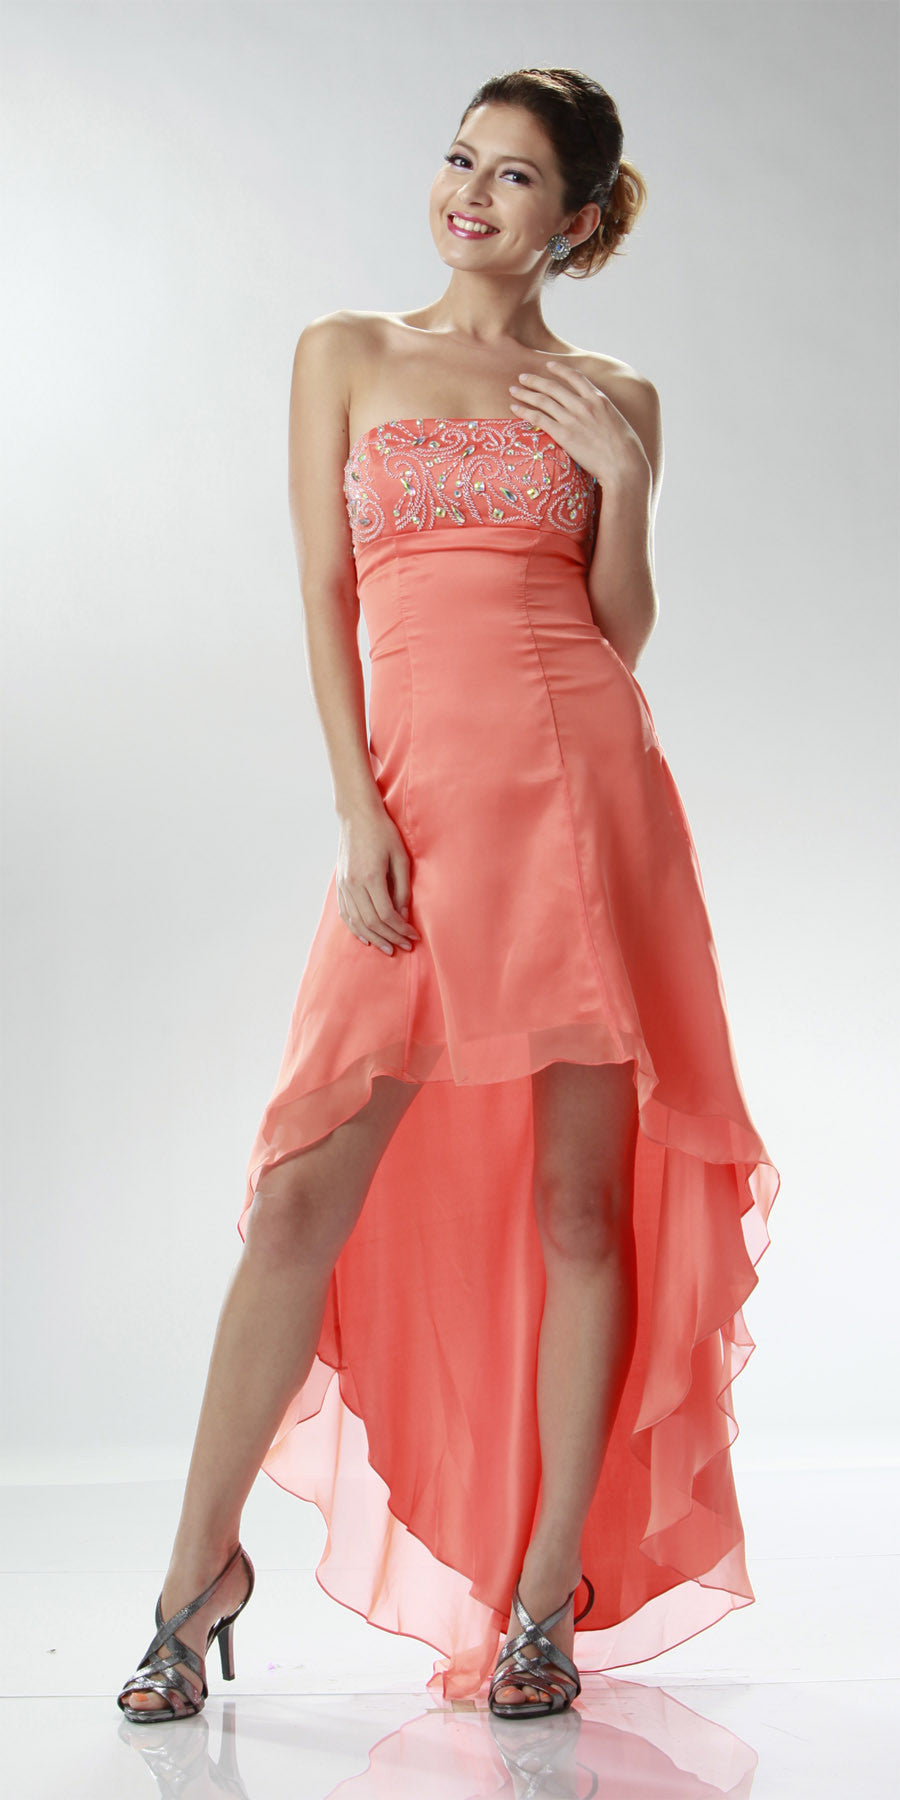 ON SPECIAL LIMITED STOCK - 2 Tone Chiffon Orange/Coral High Low Formal Dress Strapless Beaded Top